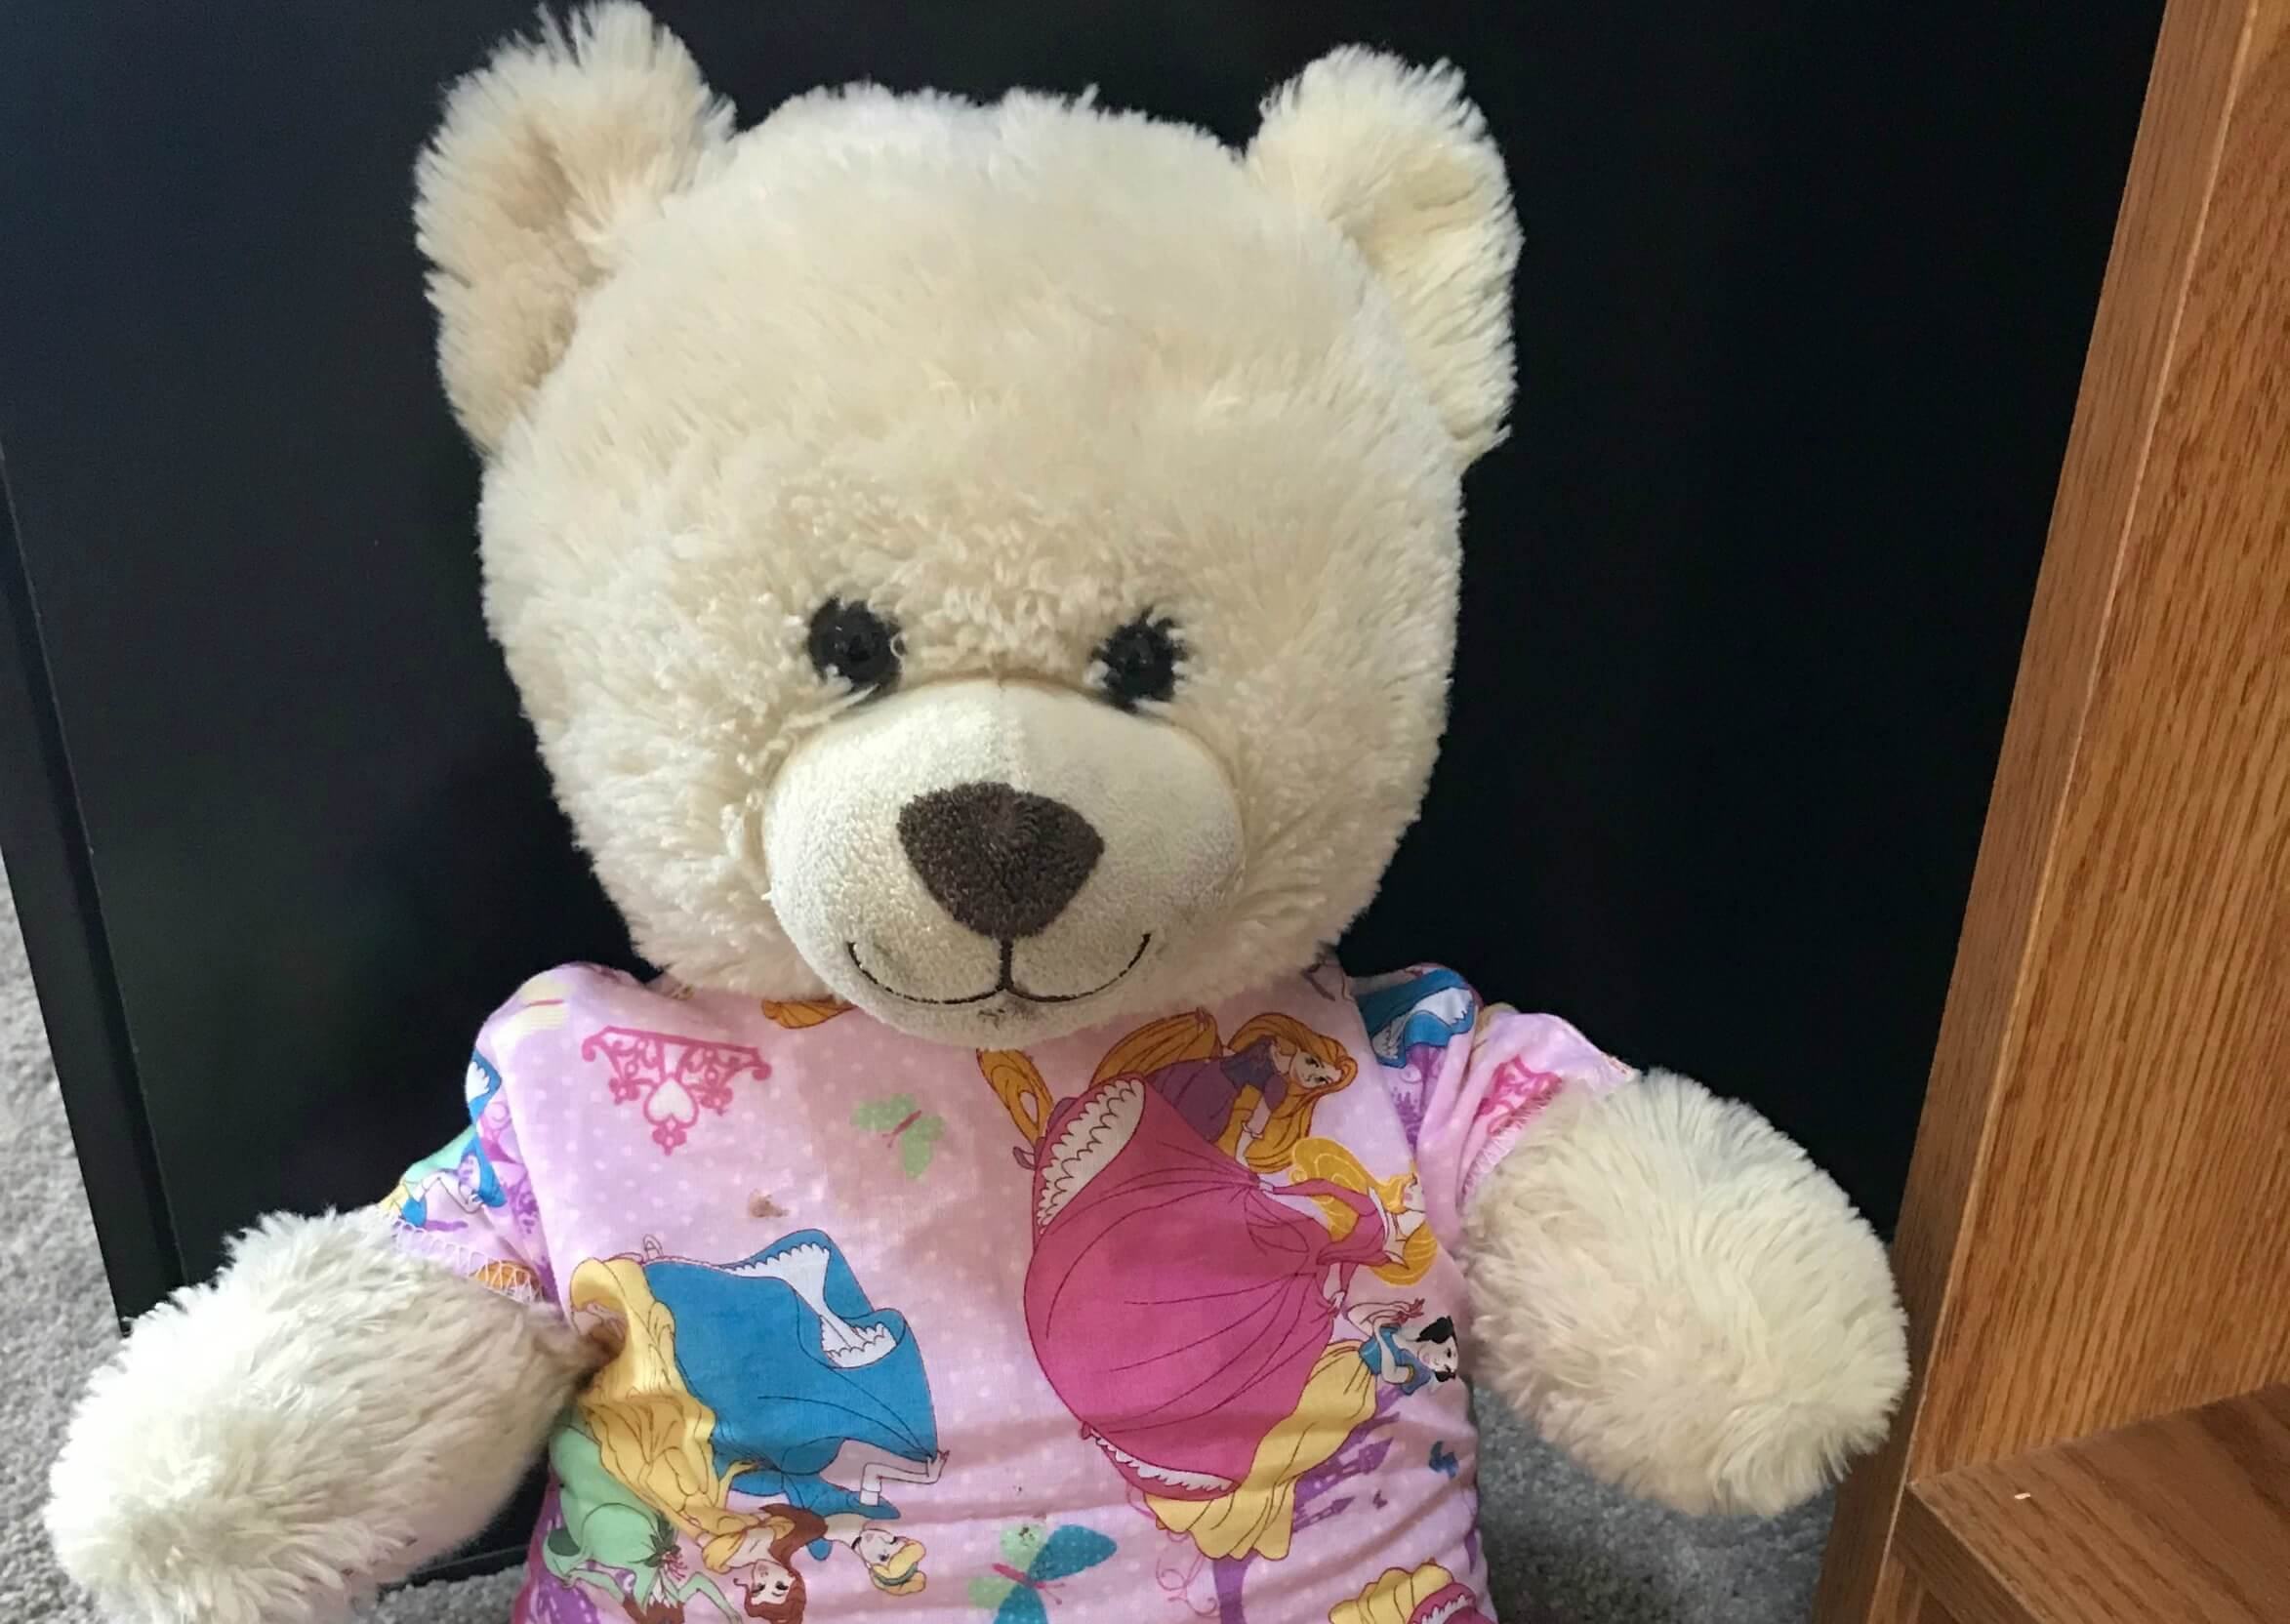 Free Hospital Gowns for Your Child\'s Doll or Stuffed Animal